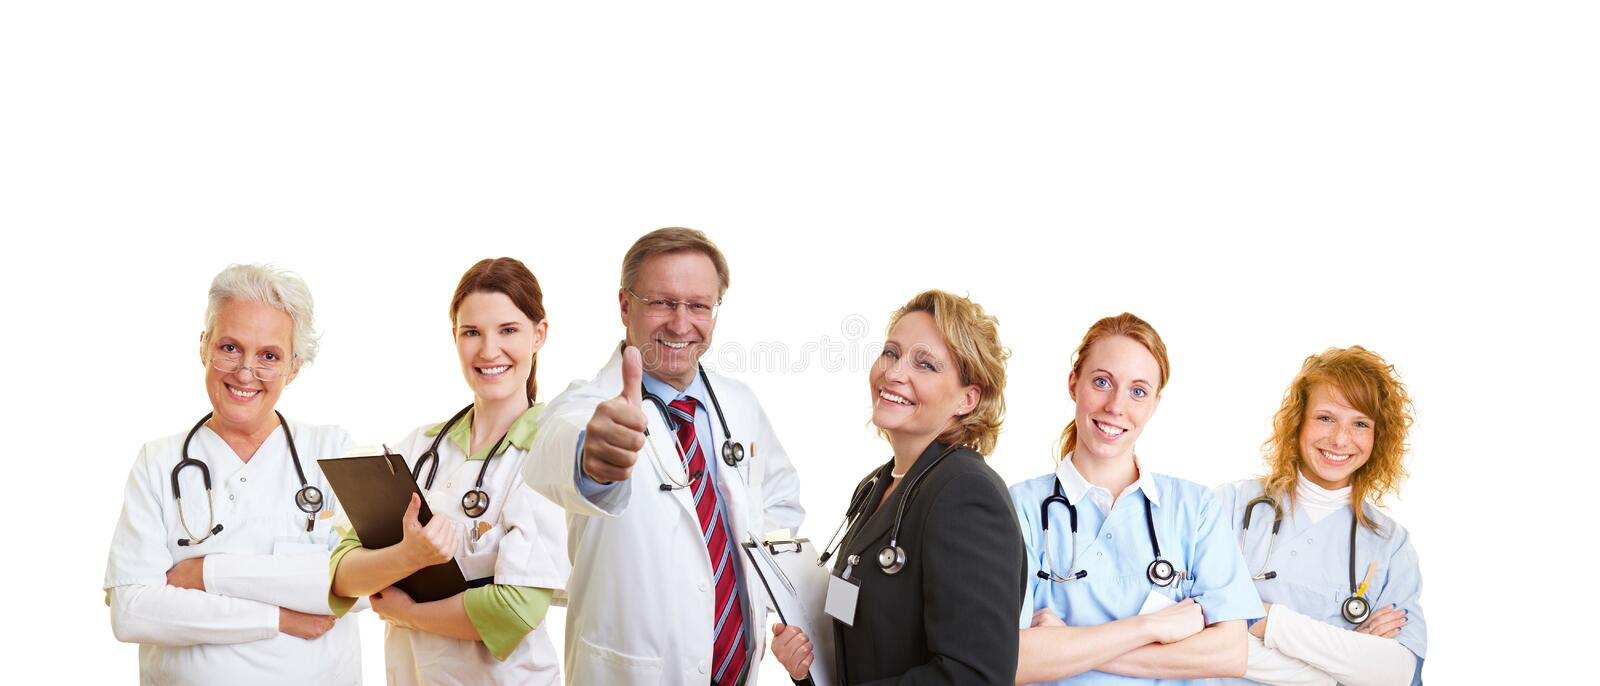 Successful medical team. Happy doctor and his smiling medical staff royalty free stock photo